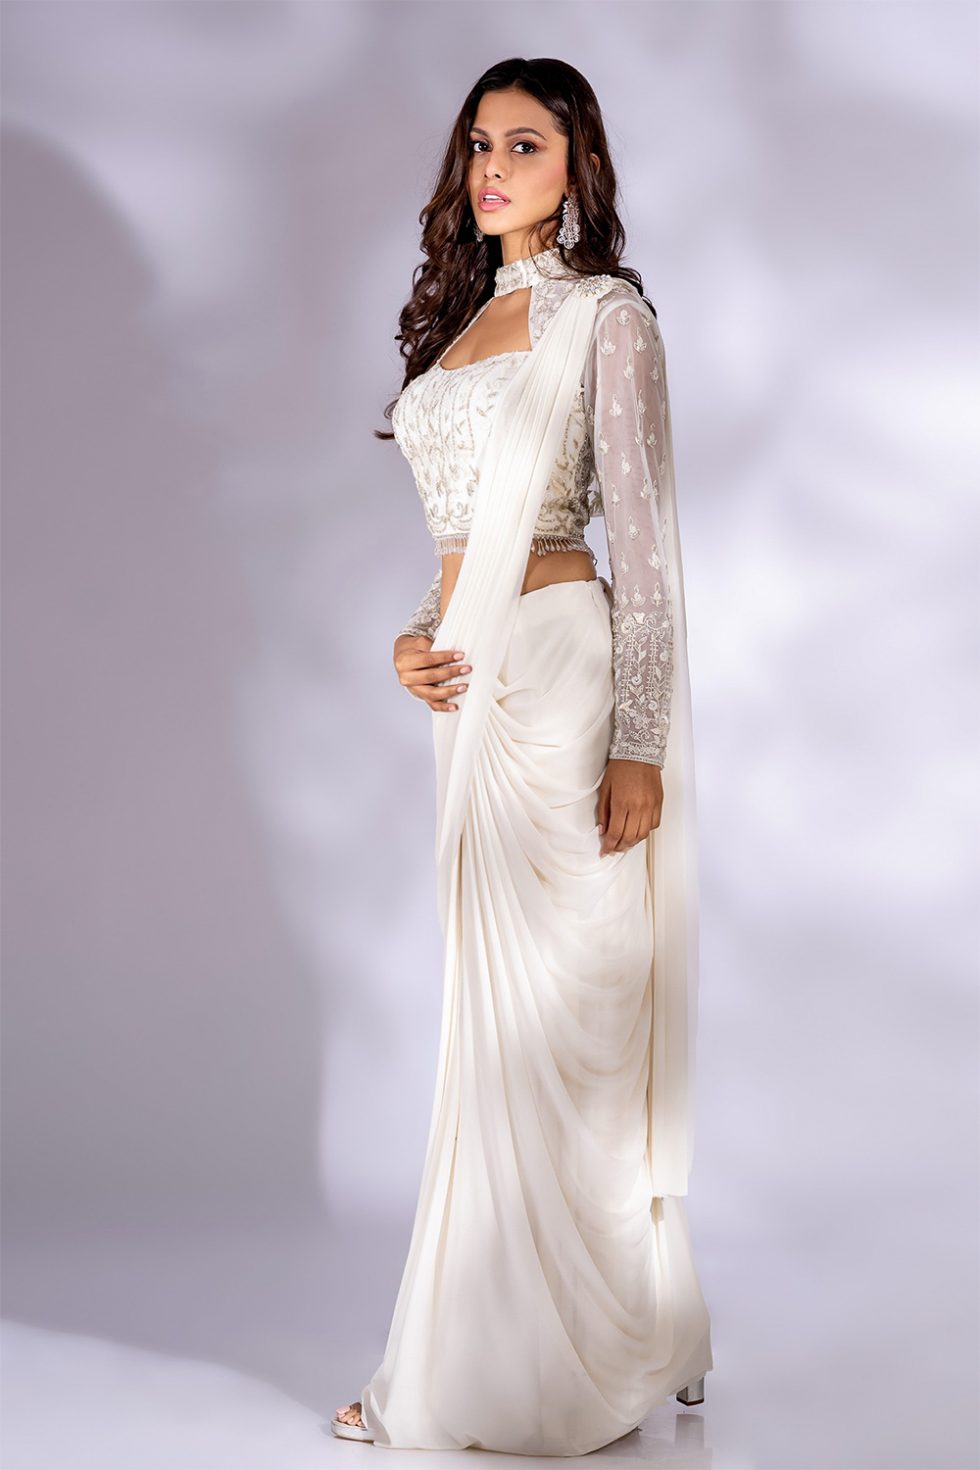 Pearl white pre stitched draped saree paired with a matching hand embroidered blouse and bolero jacket with a jewelled broach and tassels.